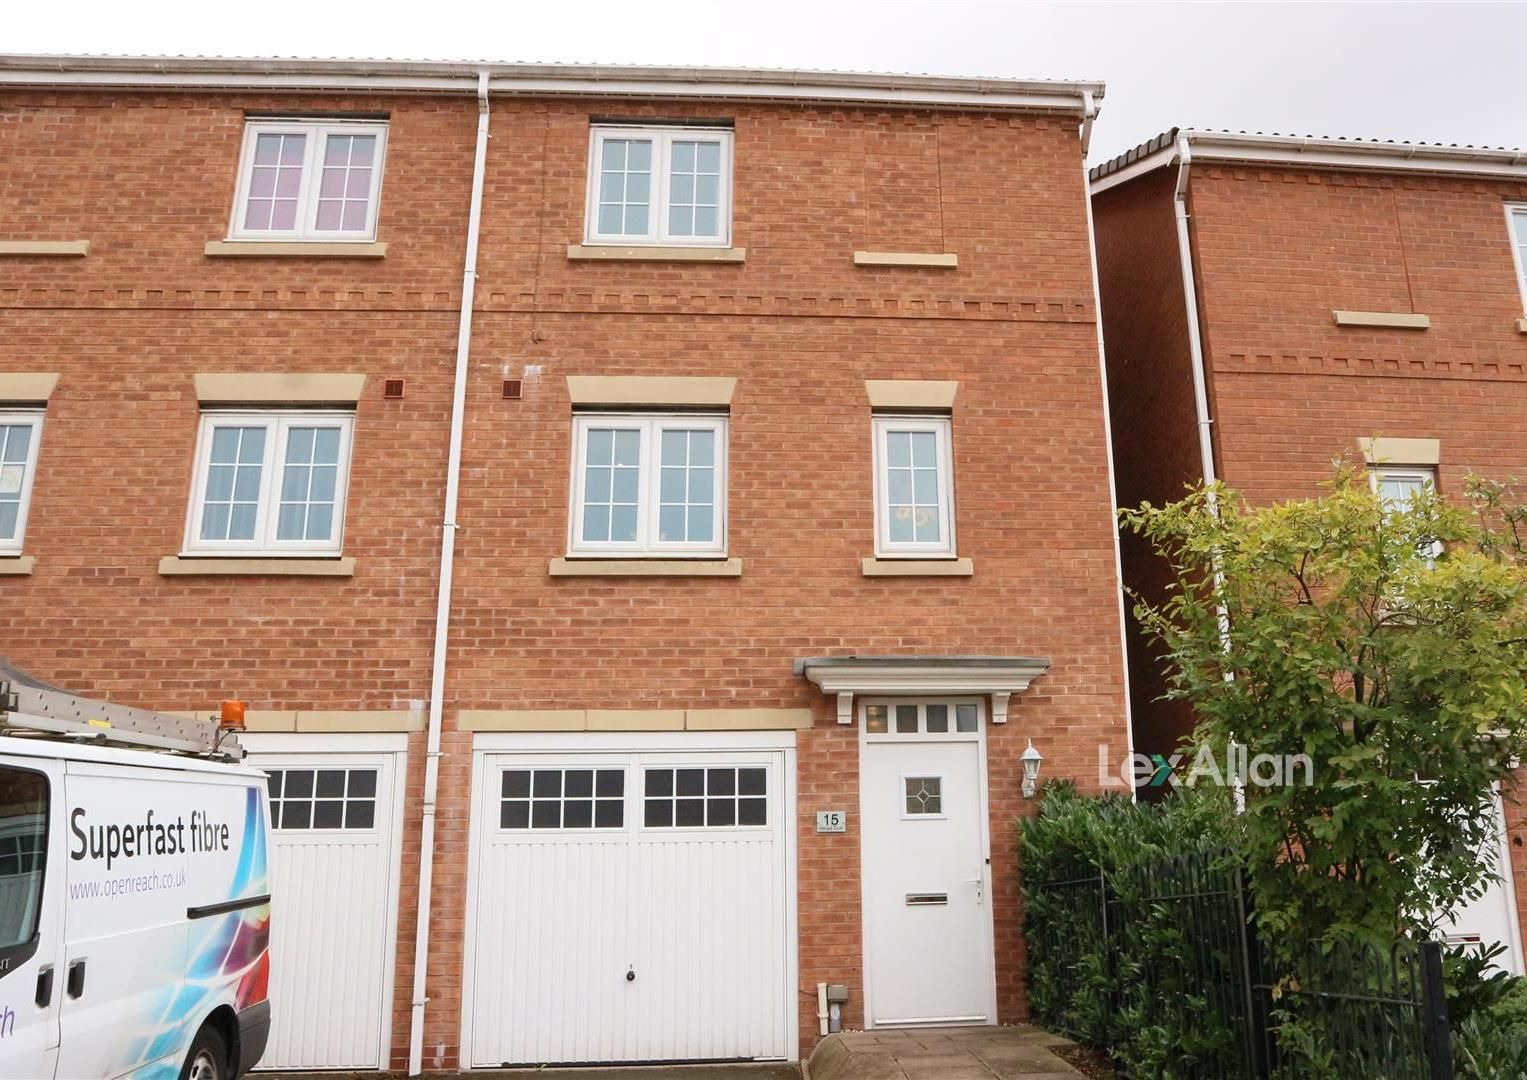 3 bed end-of-terrace for sale, DY5